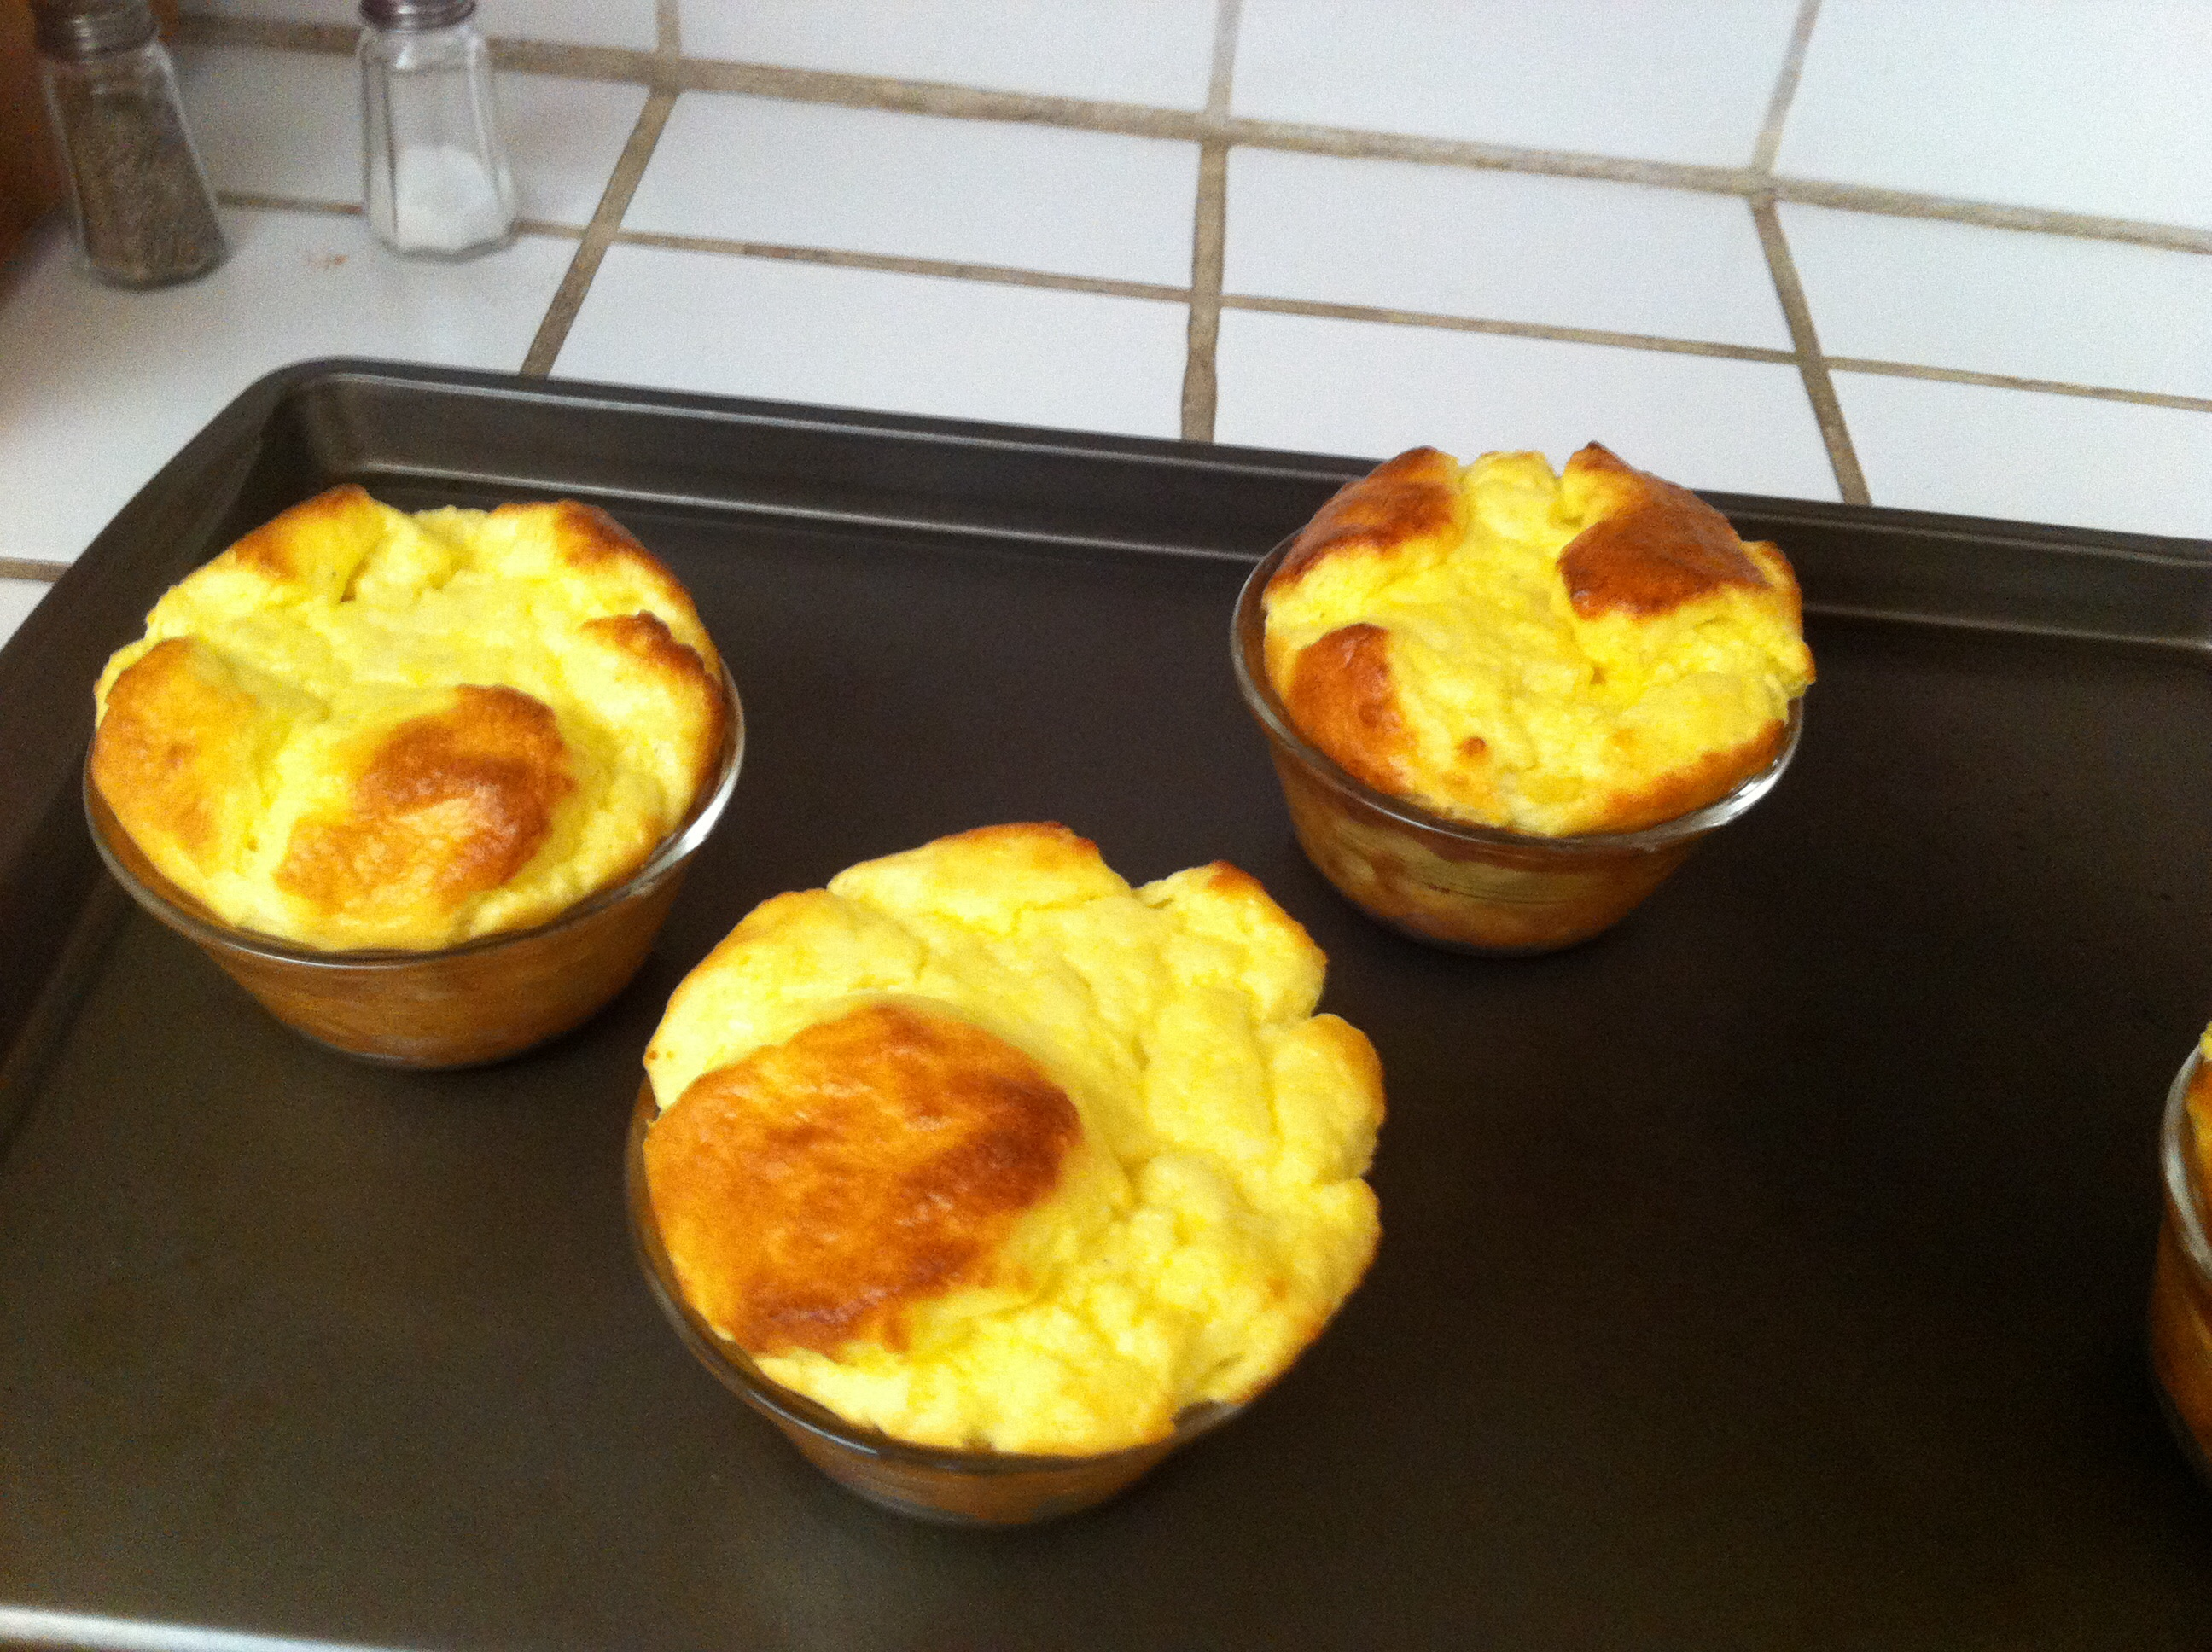 Apple and Cheddar Cheese Souffles JHeadley